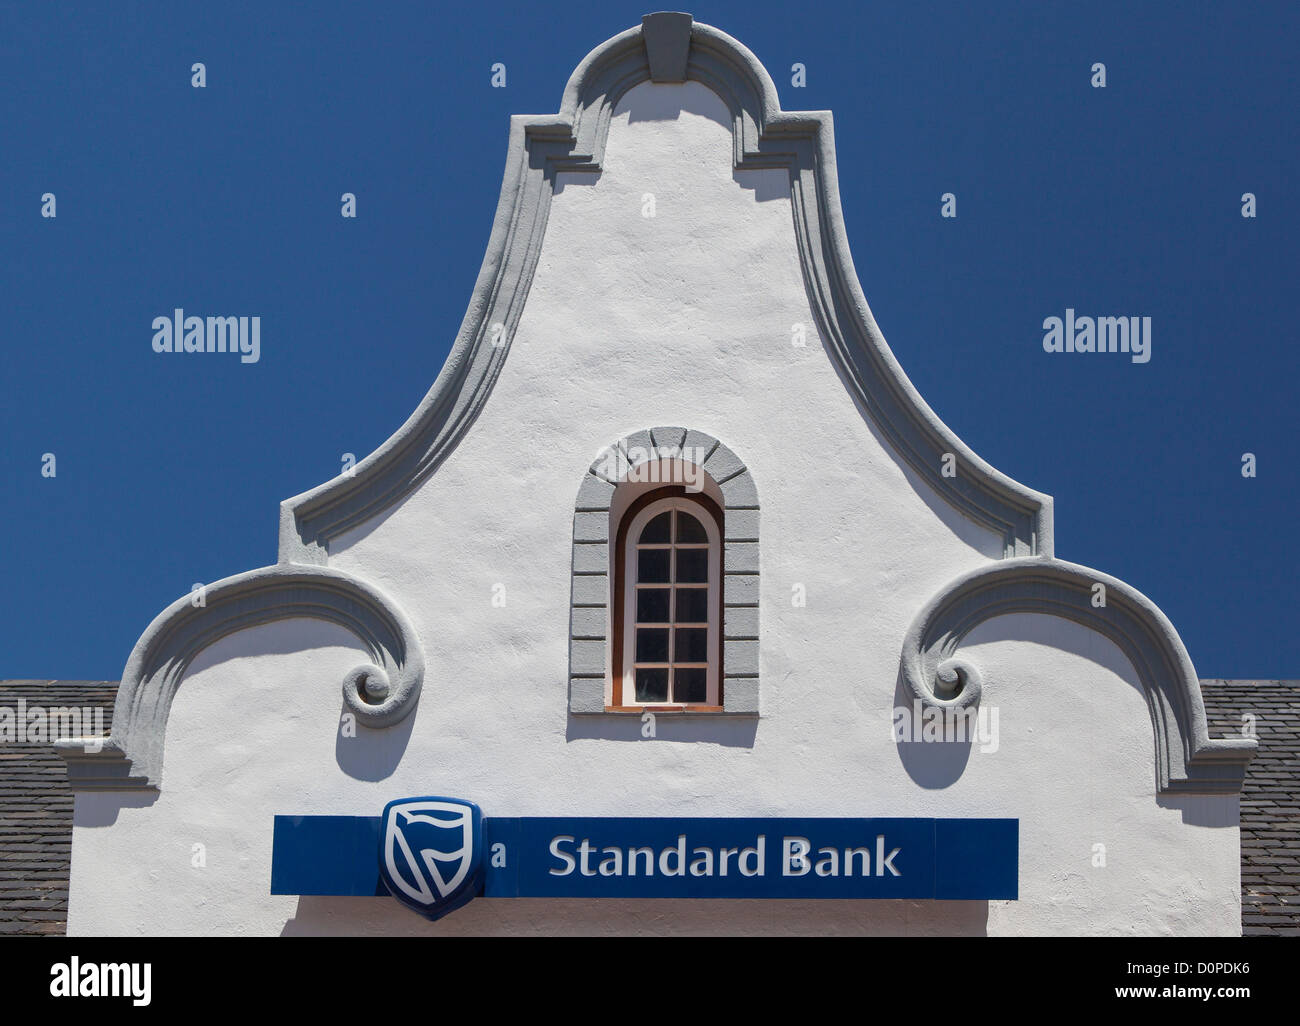 Standard Bank Fish Hoek Phone Number Cape Dutch Stock Photos Cape Dutch Stock Images Alamy